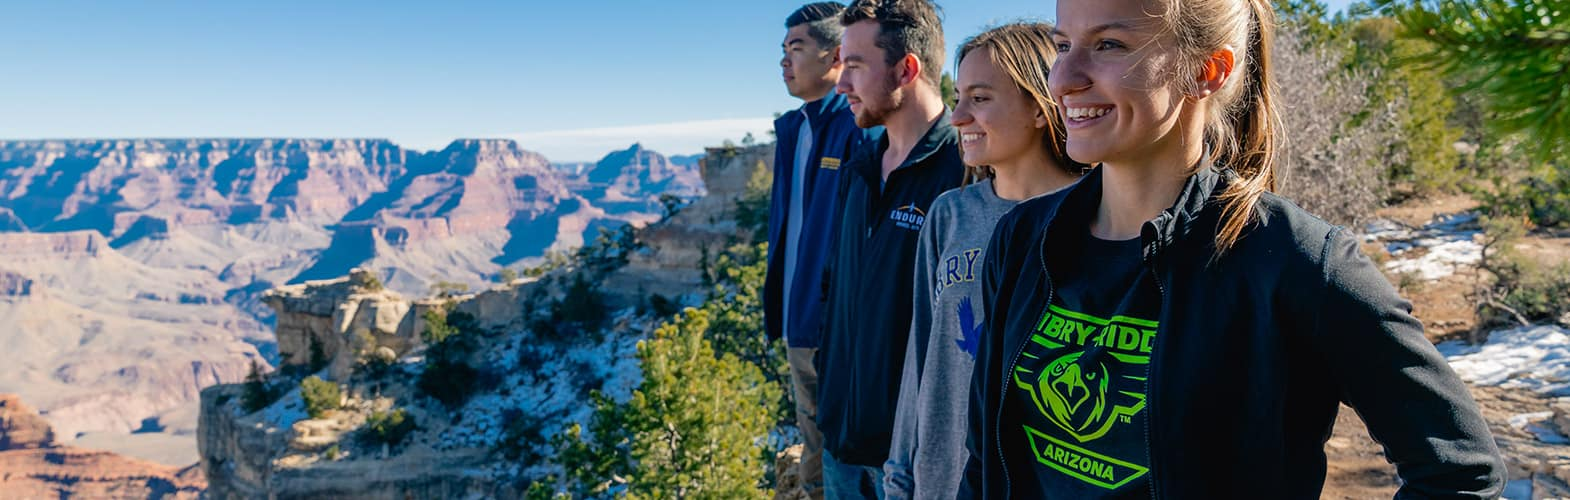 four smiling Enbry-Riddle Prescott students looking at mountains